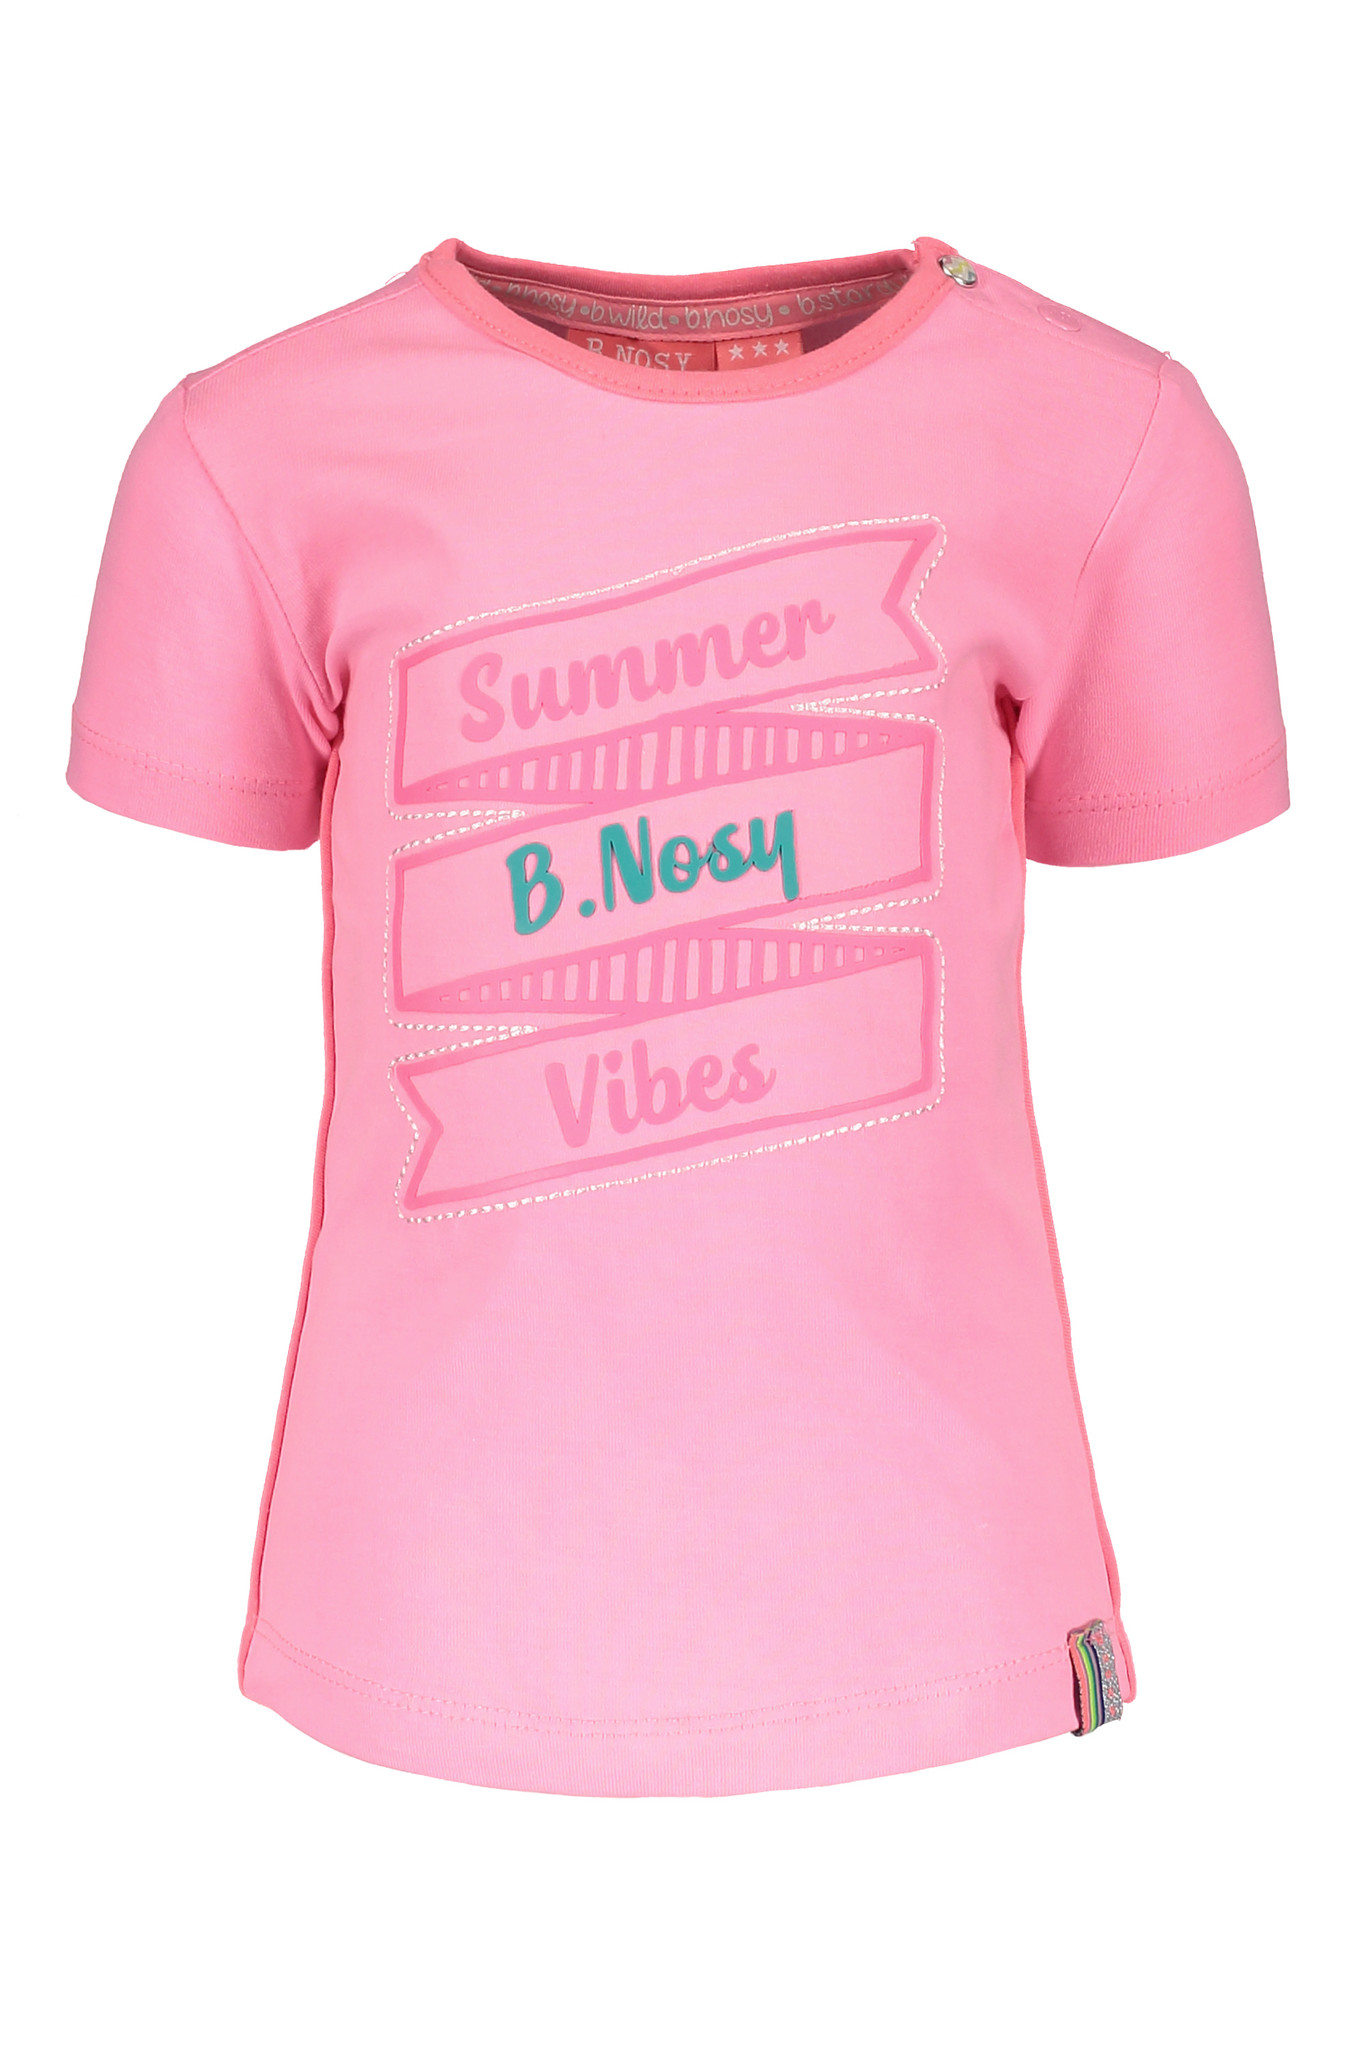 B.Nosy B.Nosy T-shirt with print and outline embroidery bubblegum